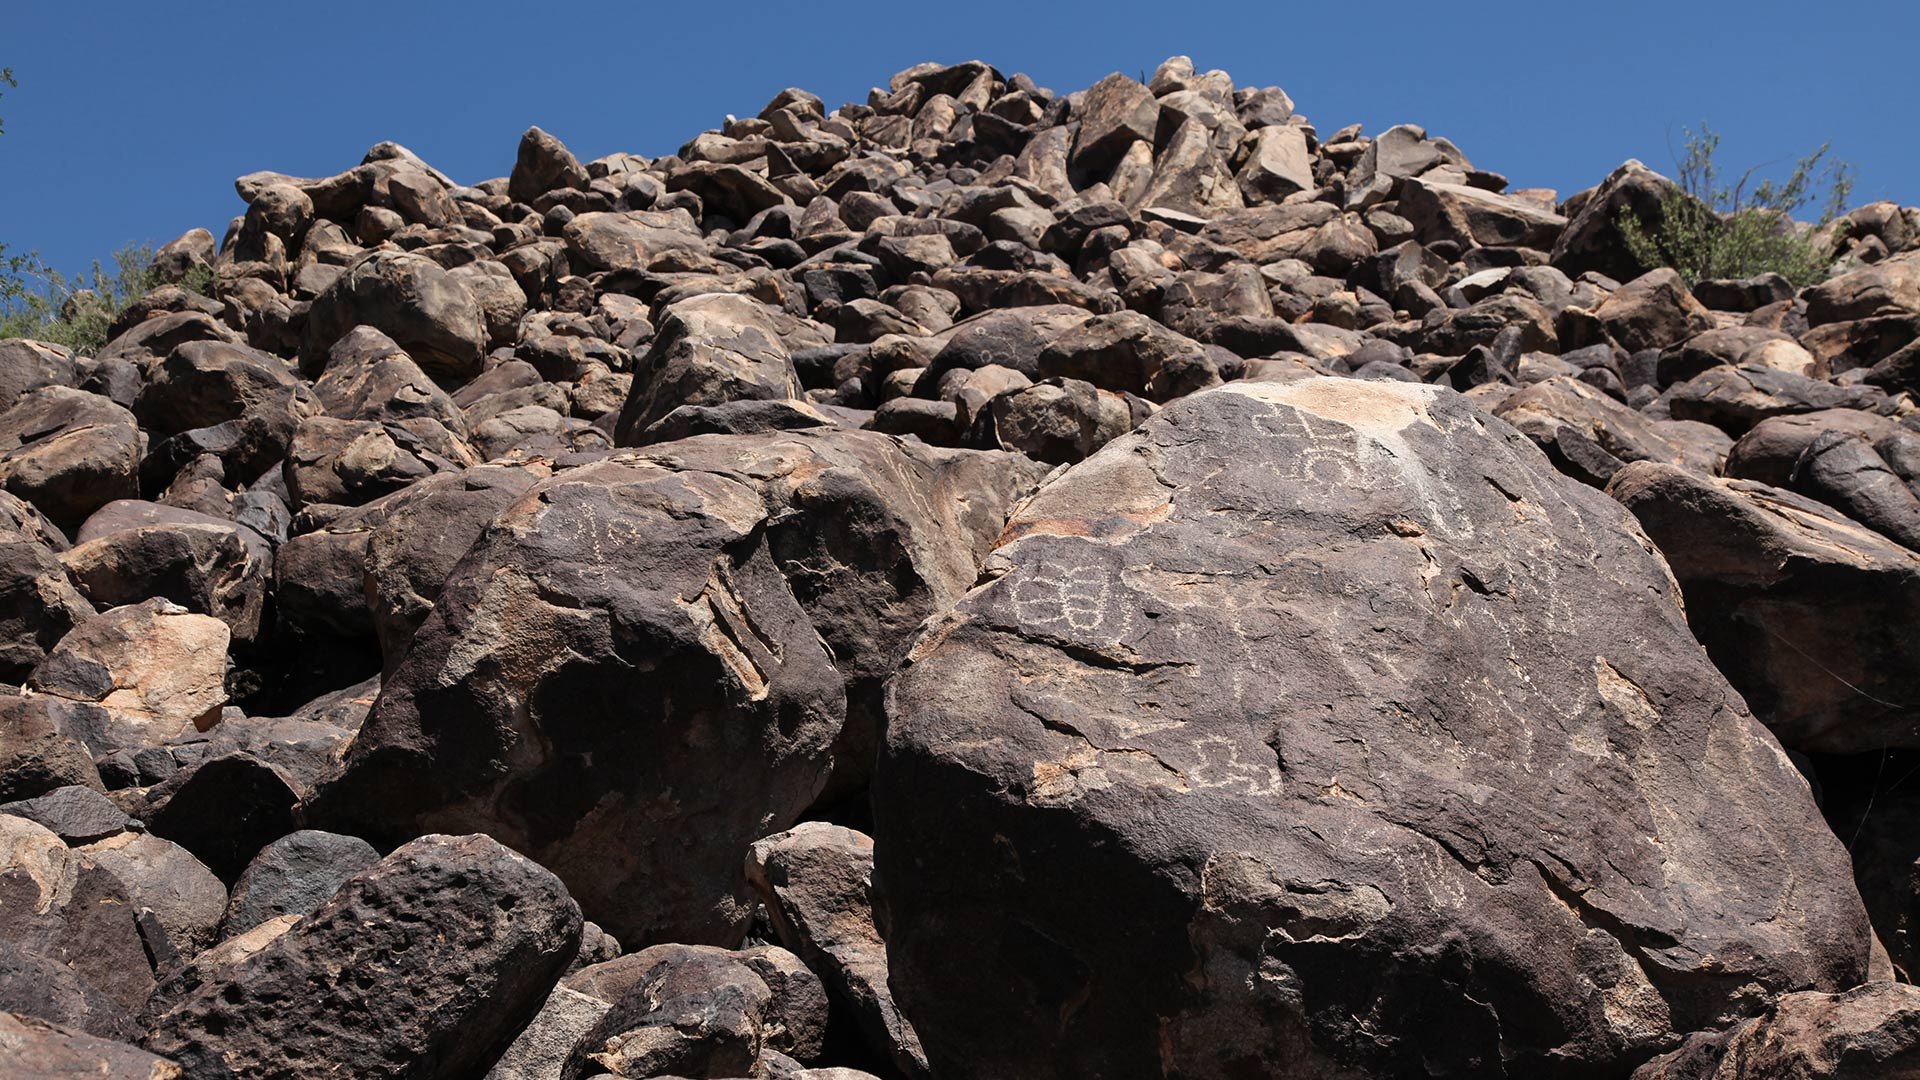 Native American Petroglyphs in Ironwood Forest National Monument.